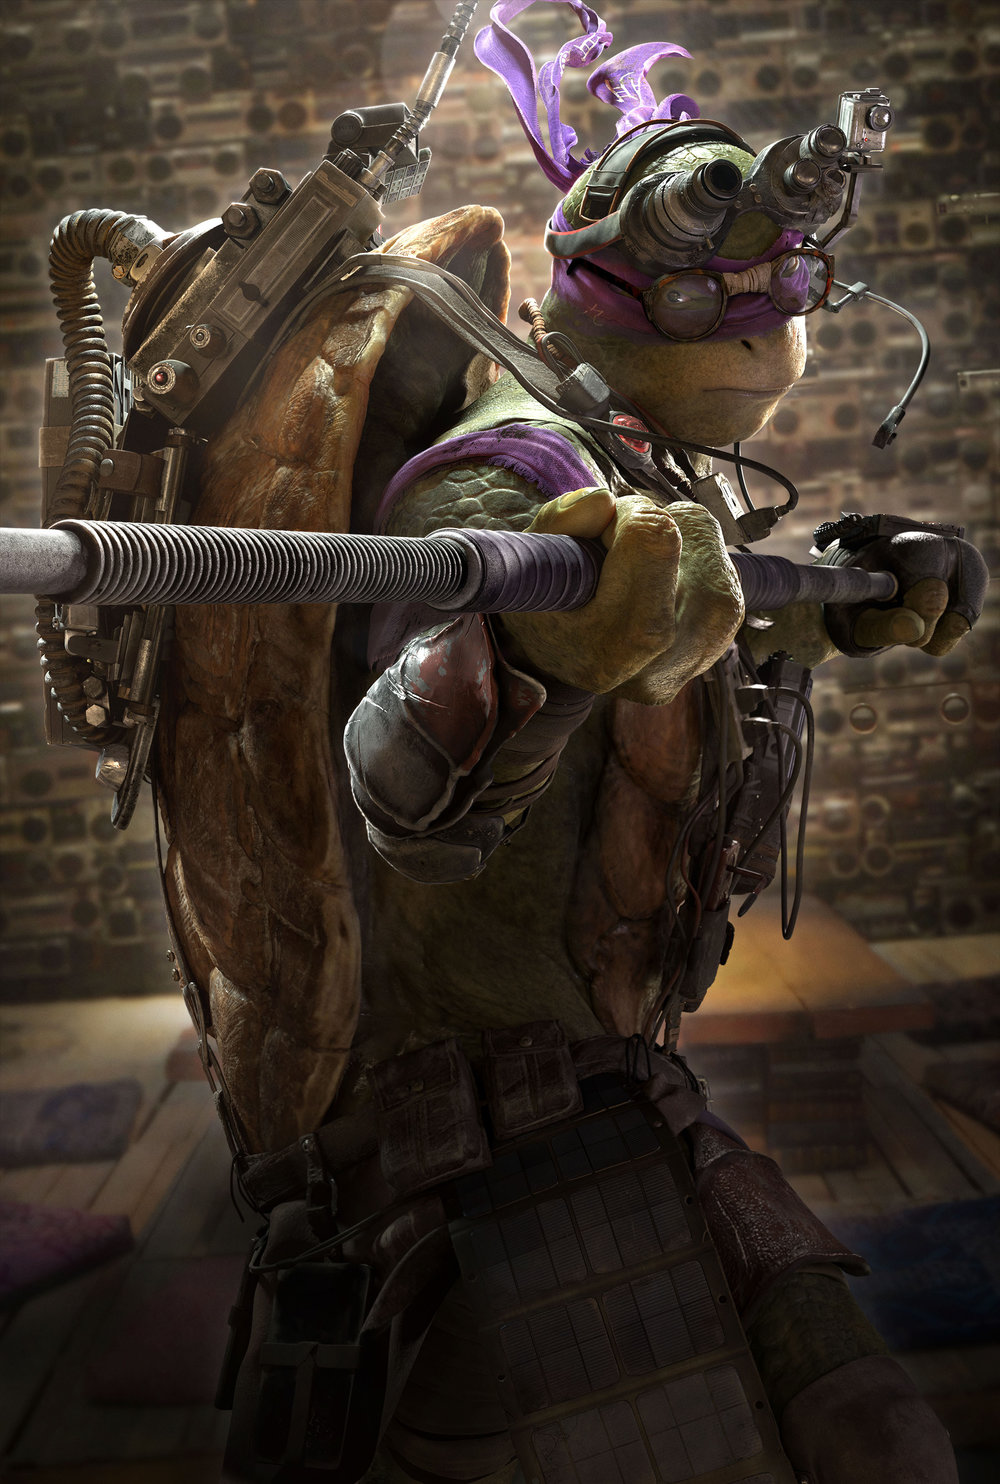 Teenage Mutant Ninja Turtles 2014 Movie Review TMNT Donatello